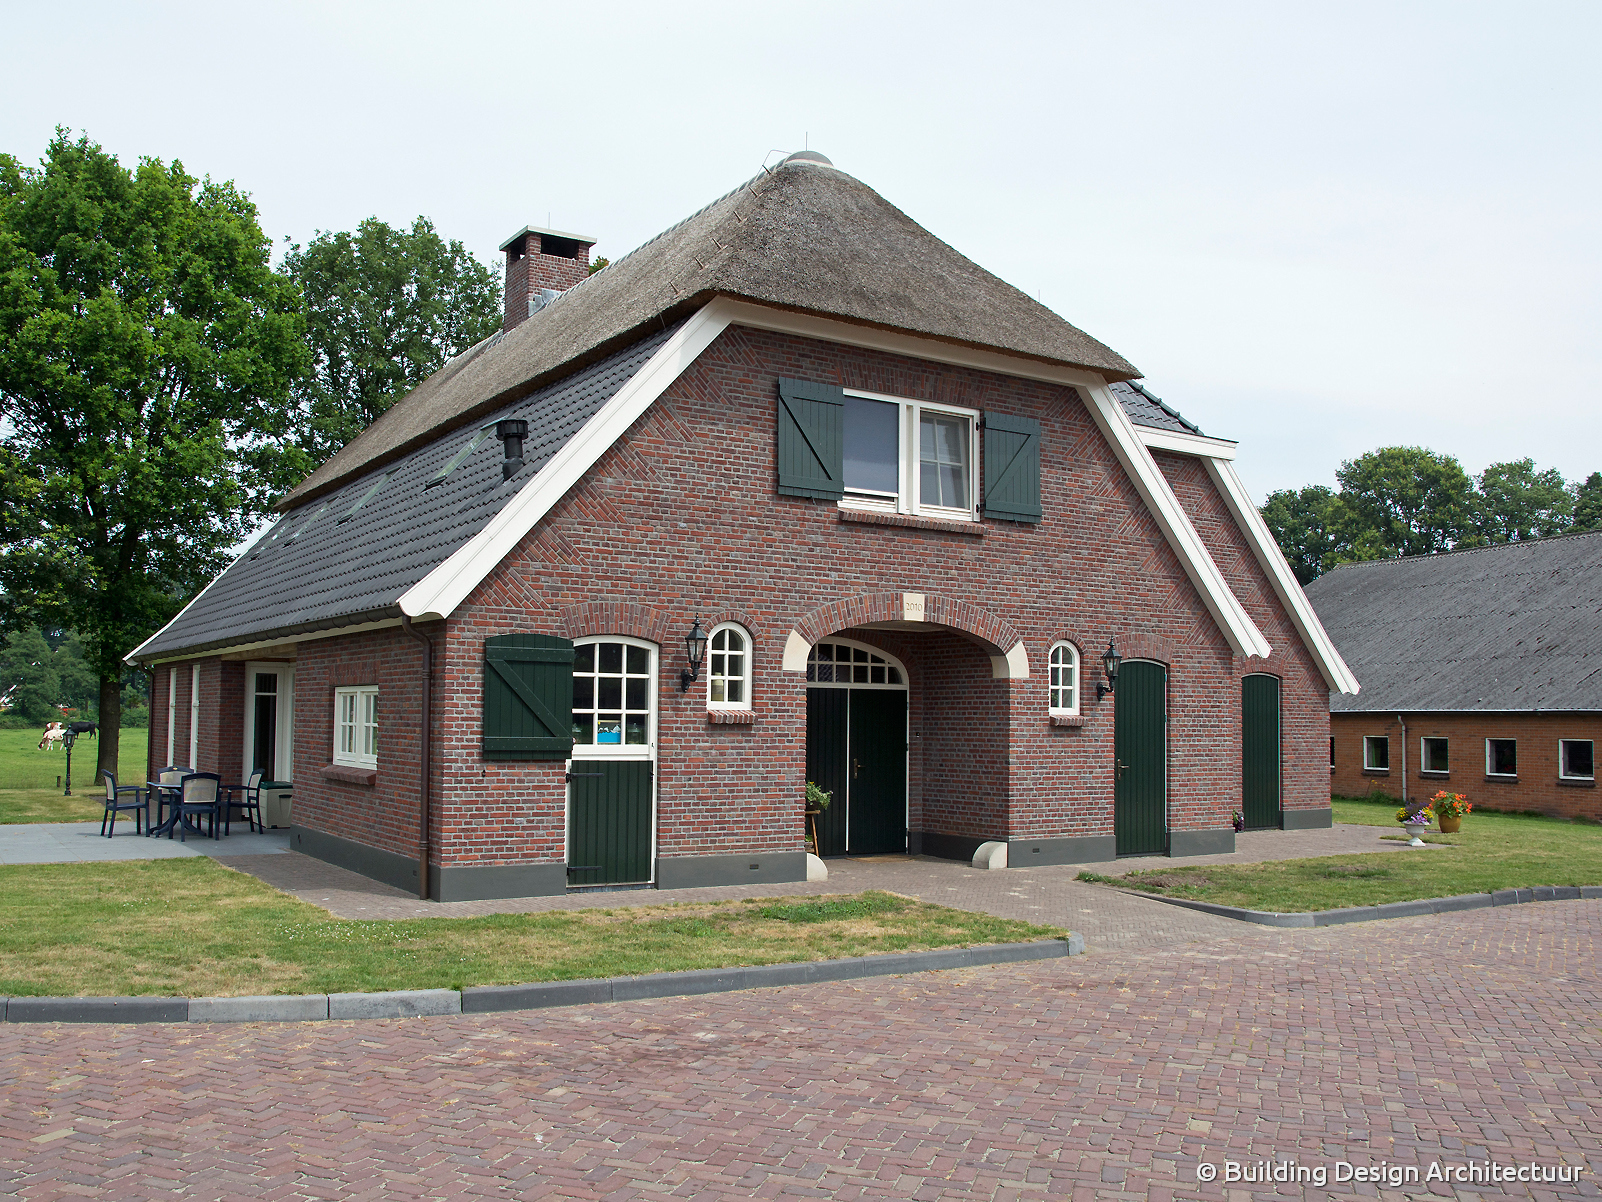 Building design architectuur for Moderne boerderij architectuur